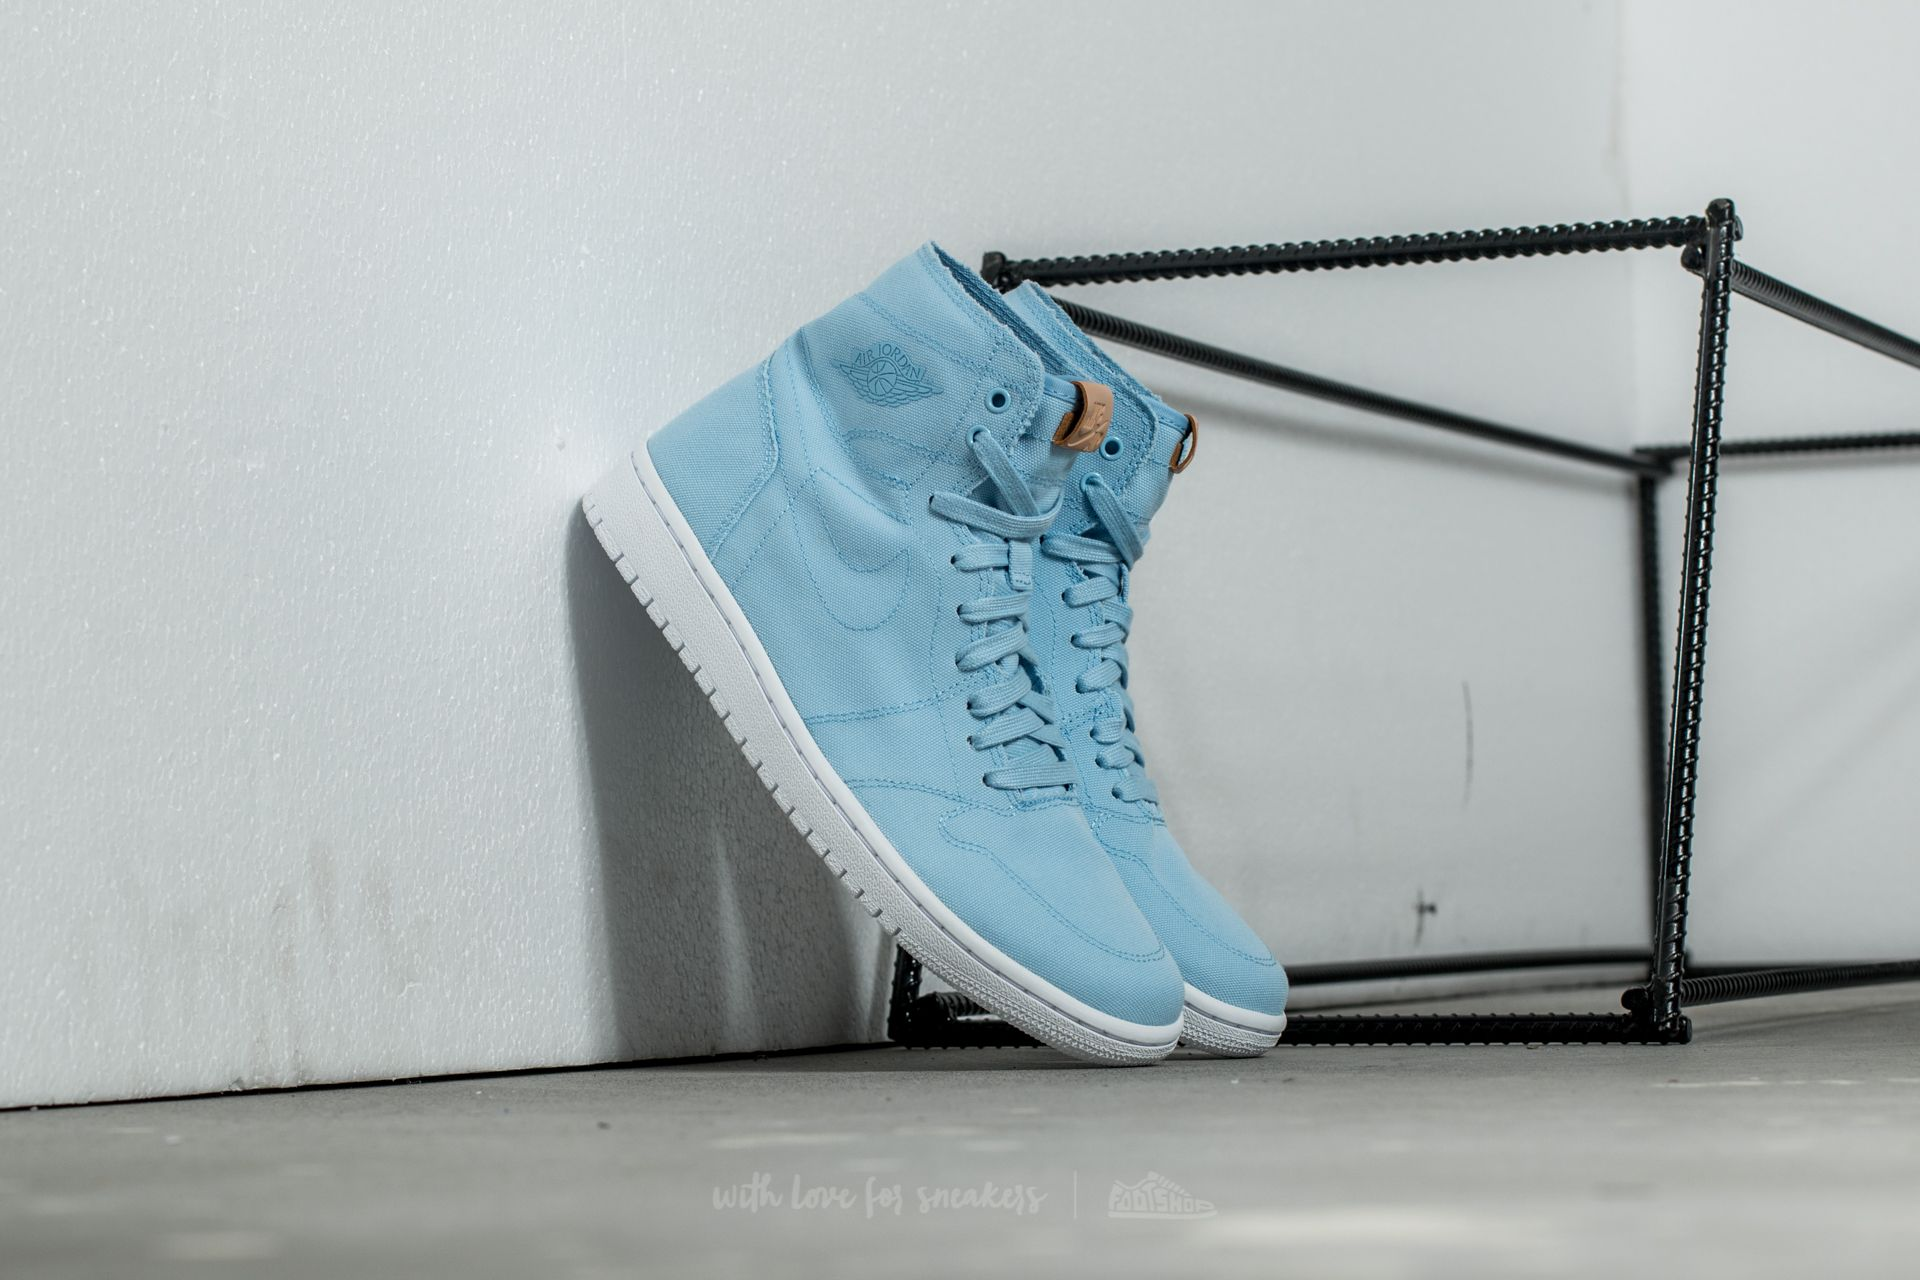 Air Jordan 1 Retro High Decon Ice Blue/ White-Vachetta Tan